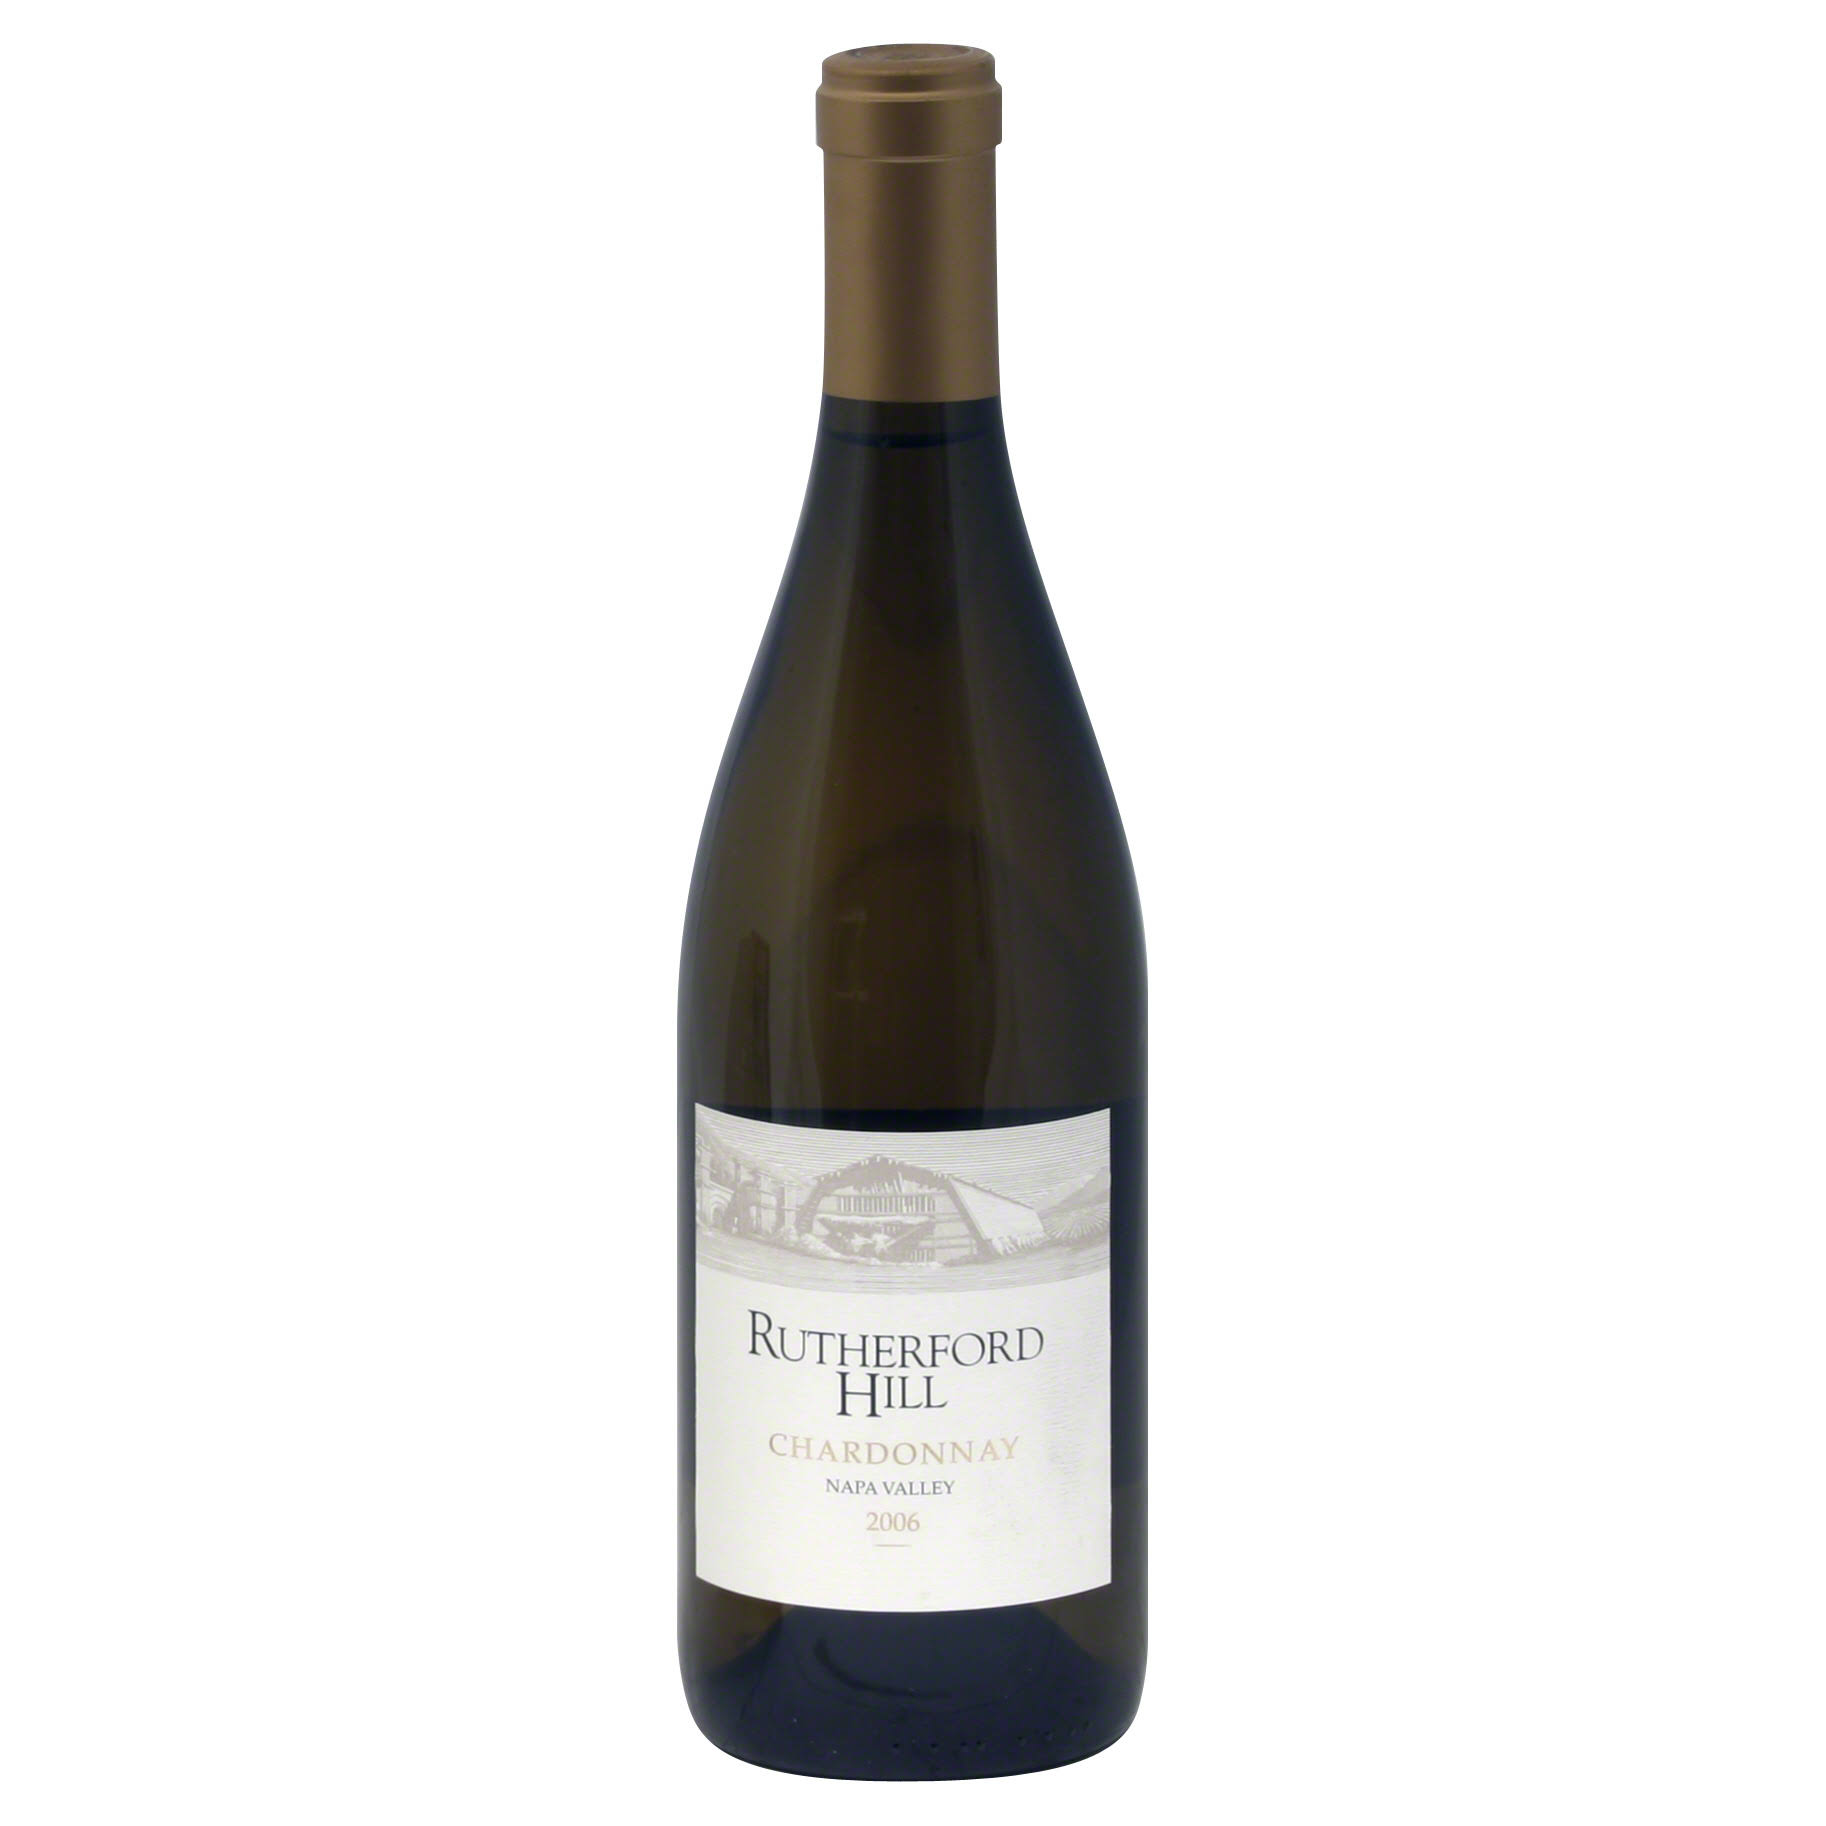 Rutherford Hill Chardonnay, Napa Valley, 2006 - 750 ml